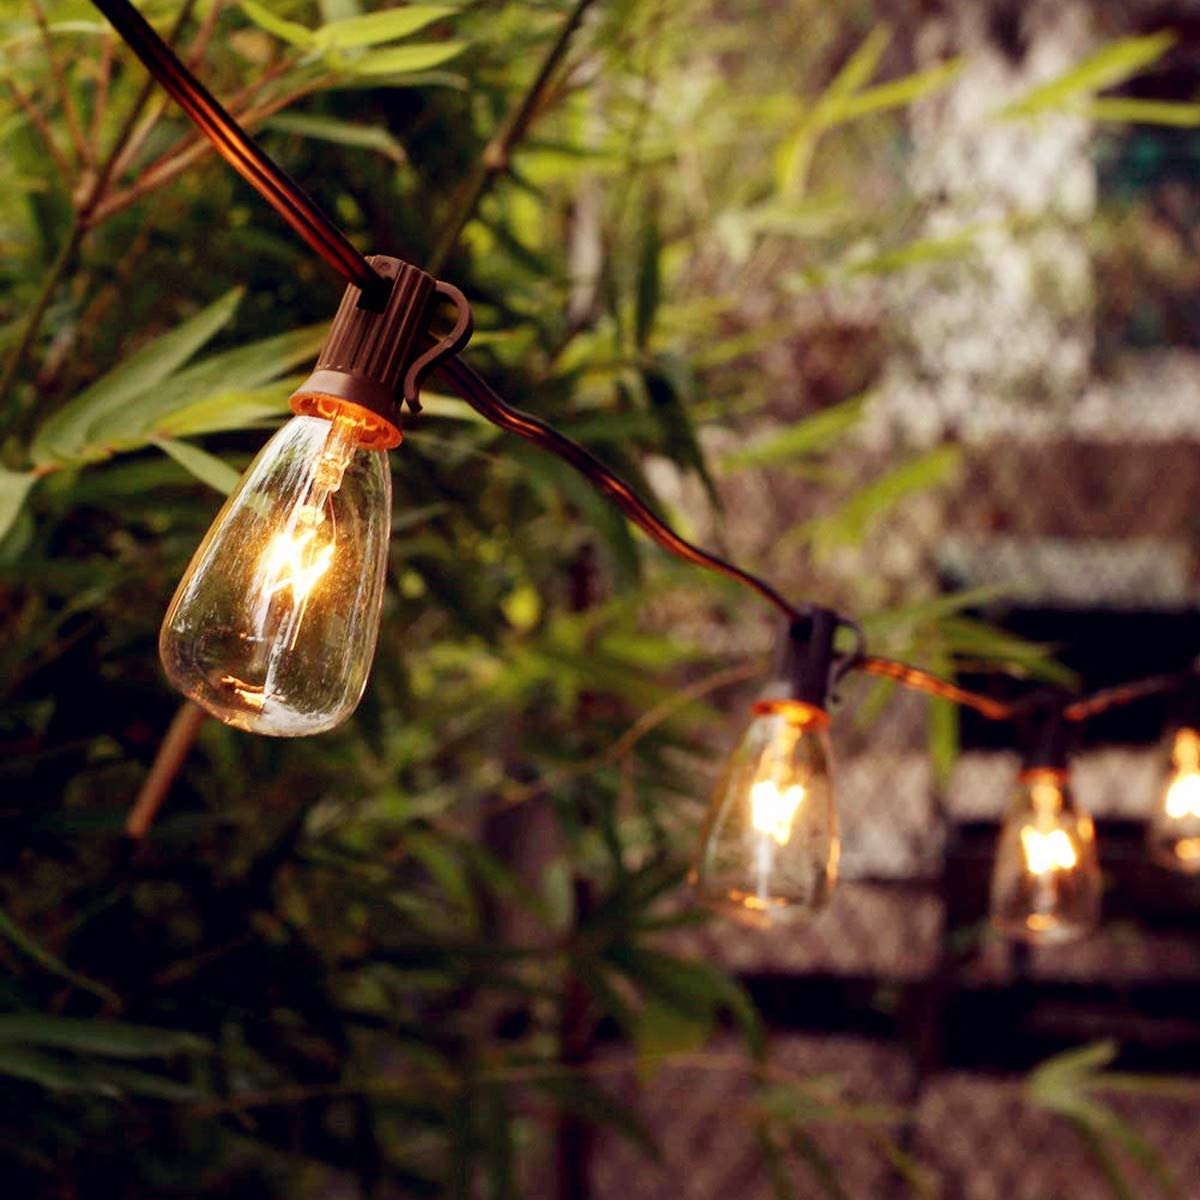 SUNSGNE 25ft Outdoor Edison String Lights with 25 Edison ST35 Bulbs, UL Listed for Indoor/Outdoor Decor, Perfect for Patio, Garden, Backyard, Porches, Bistro, (Plus 2 Extra Bulbs)-Brown Wire